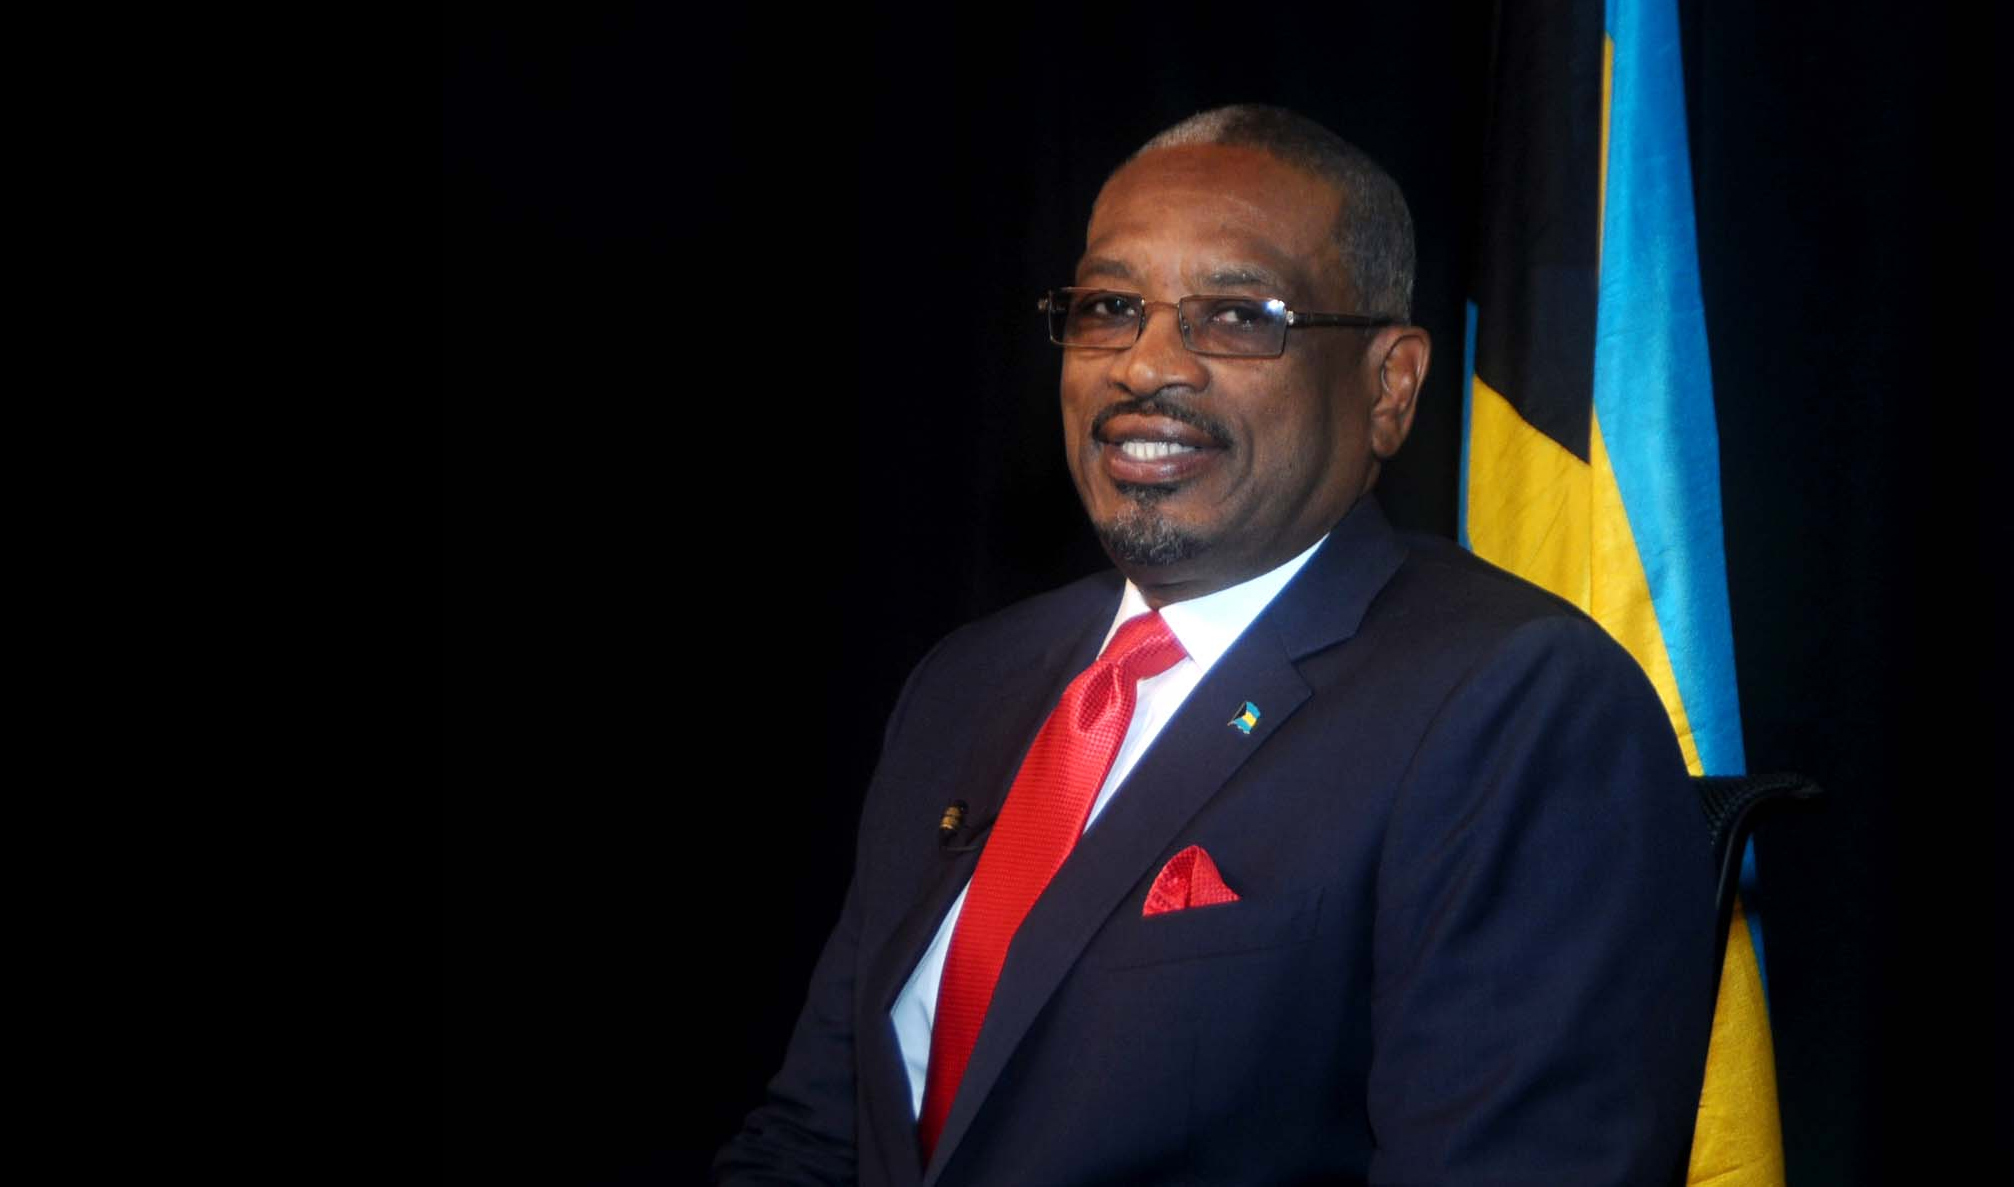 Prime Minister elect Dr. Hubert Minnis